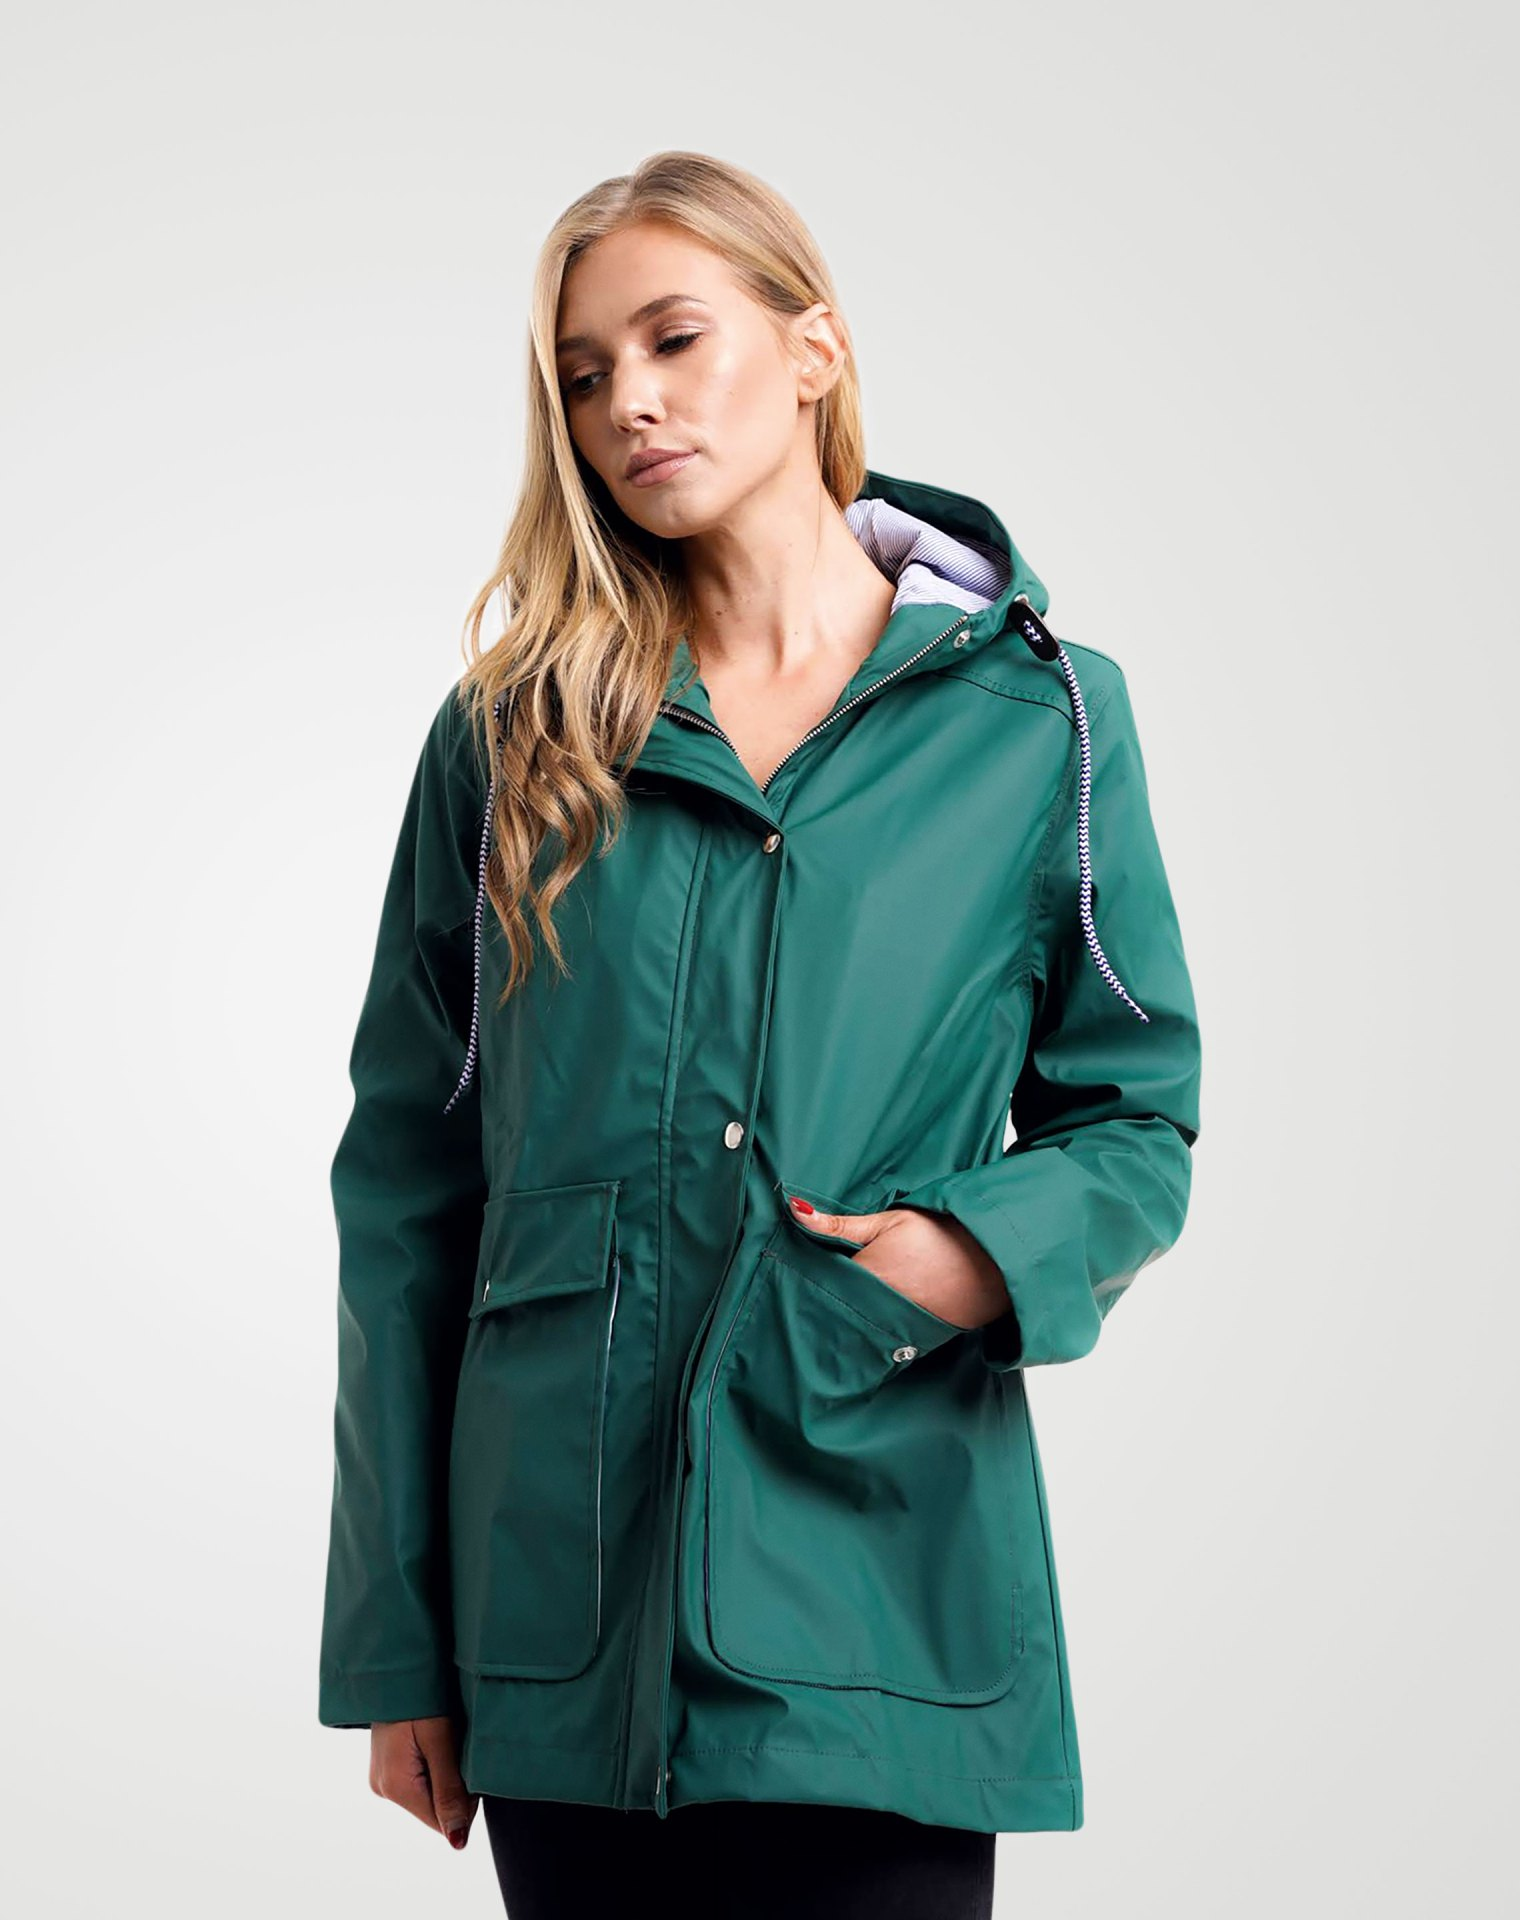 Image 2 of Womens Hooded Raincoat Jacket color Green and sizes 8,10,12,14 from Noroze